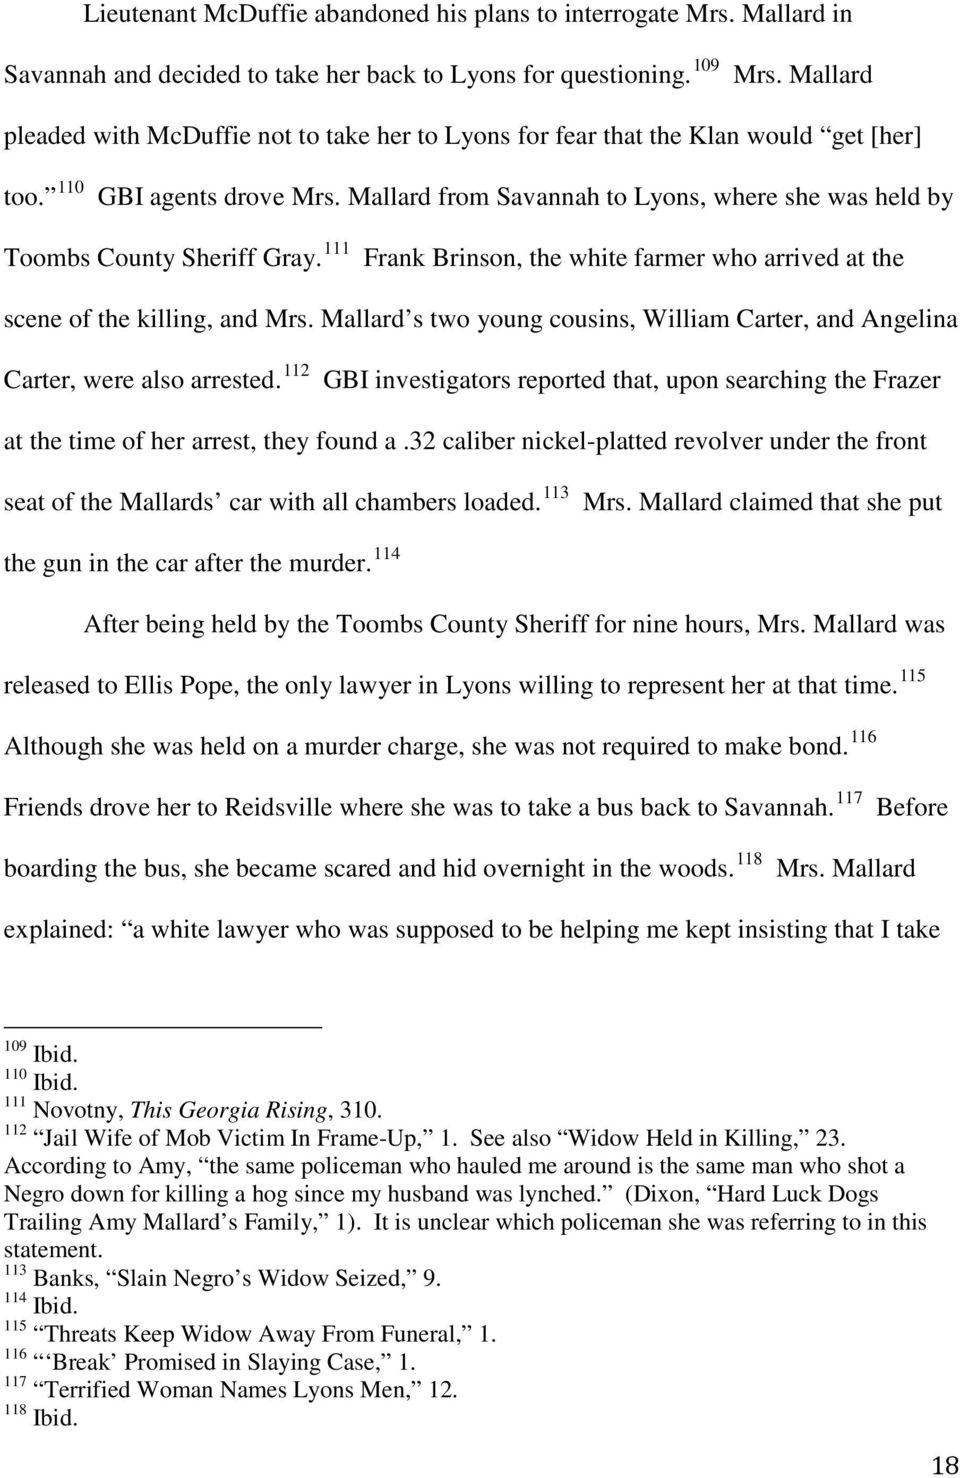 Mallard from Savannah to Lyons, where she was held by Toombs County Sheriff Gray. 111 Frank Brinson, the white farmer who arrived at the scene of the killing, and Mrs.